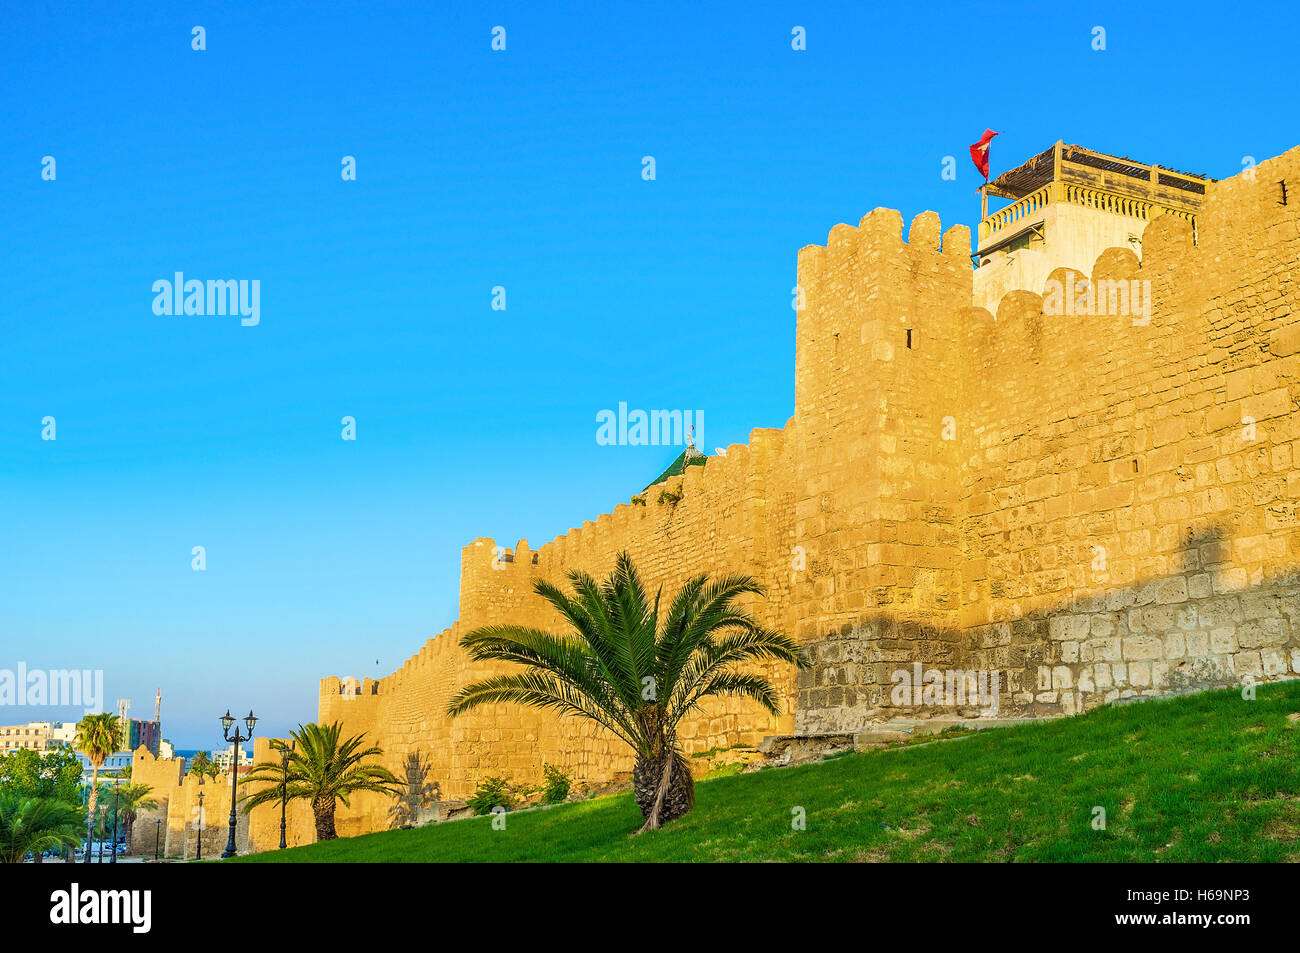 Sousse has one of the biggest Medinas in Tunisia, almost all of it is surrounded by medieval rampart, Tunisia. - Stock Image